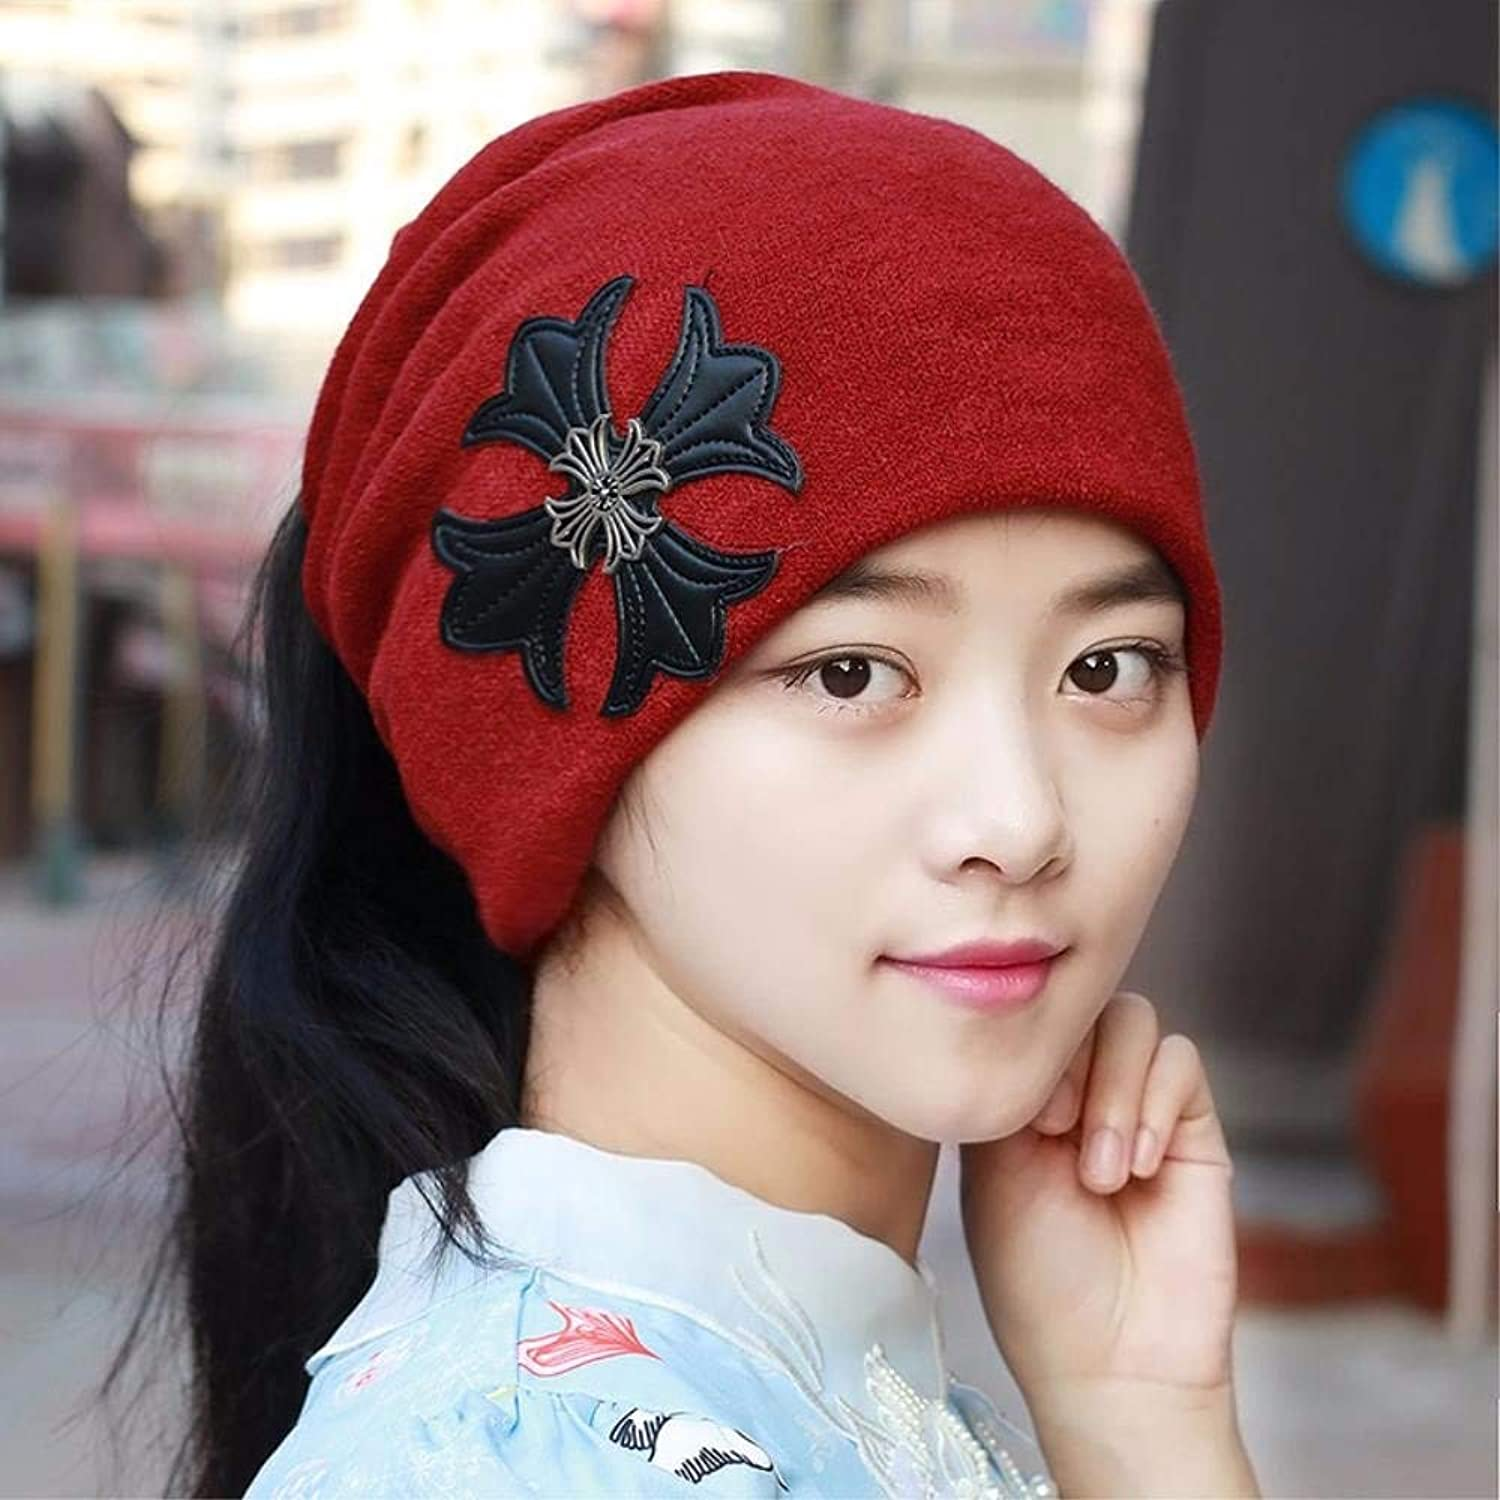 Chuiqingnet Both men and women, the fallwinter ear cap, also set the hatscarf men Baotou hat set of head cap Storehouse